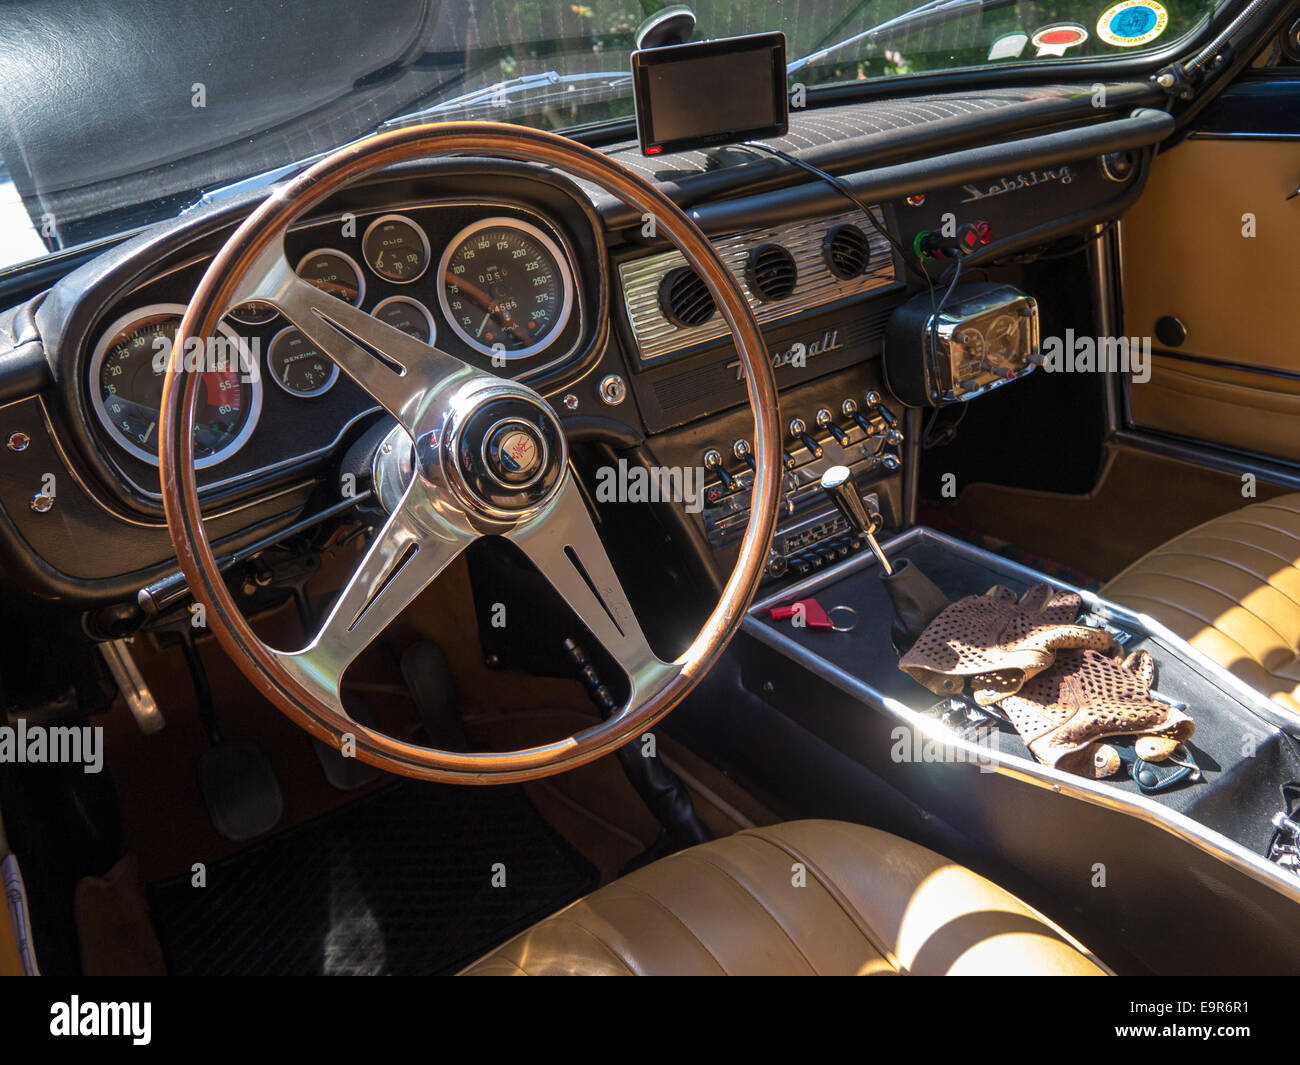 interior of a classic maserati sebring sports car with driving gloves stock photo royalty free. Black Bedroom Furniture Sets. Home Design Ideas